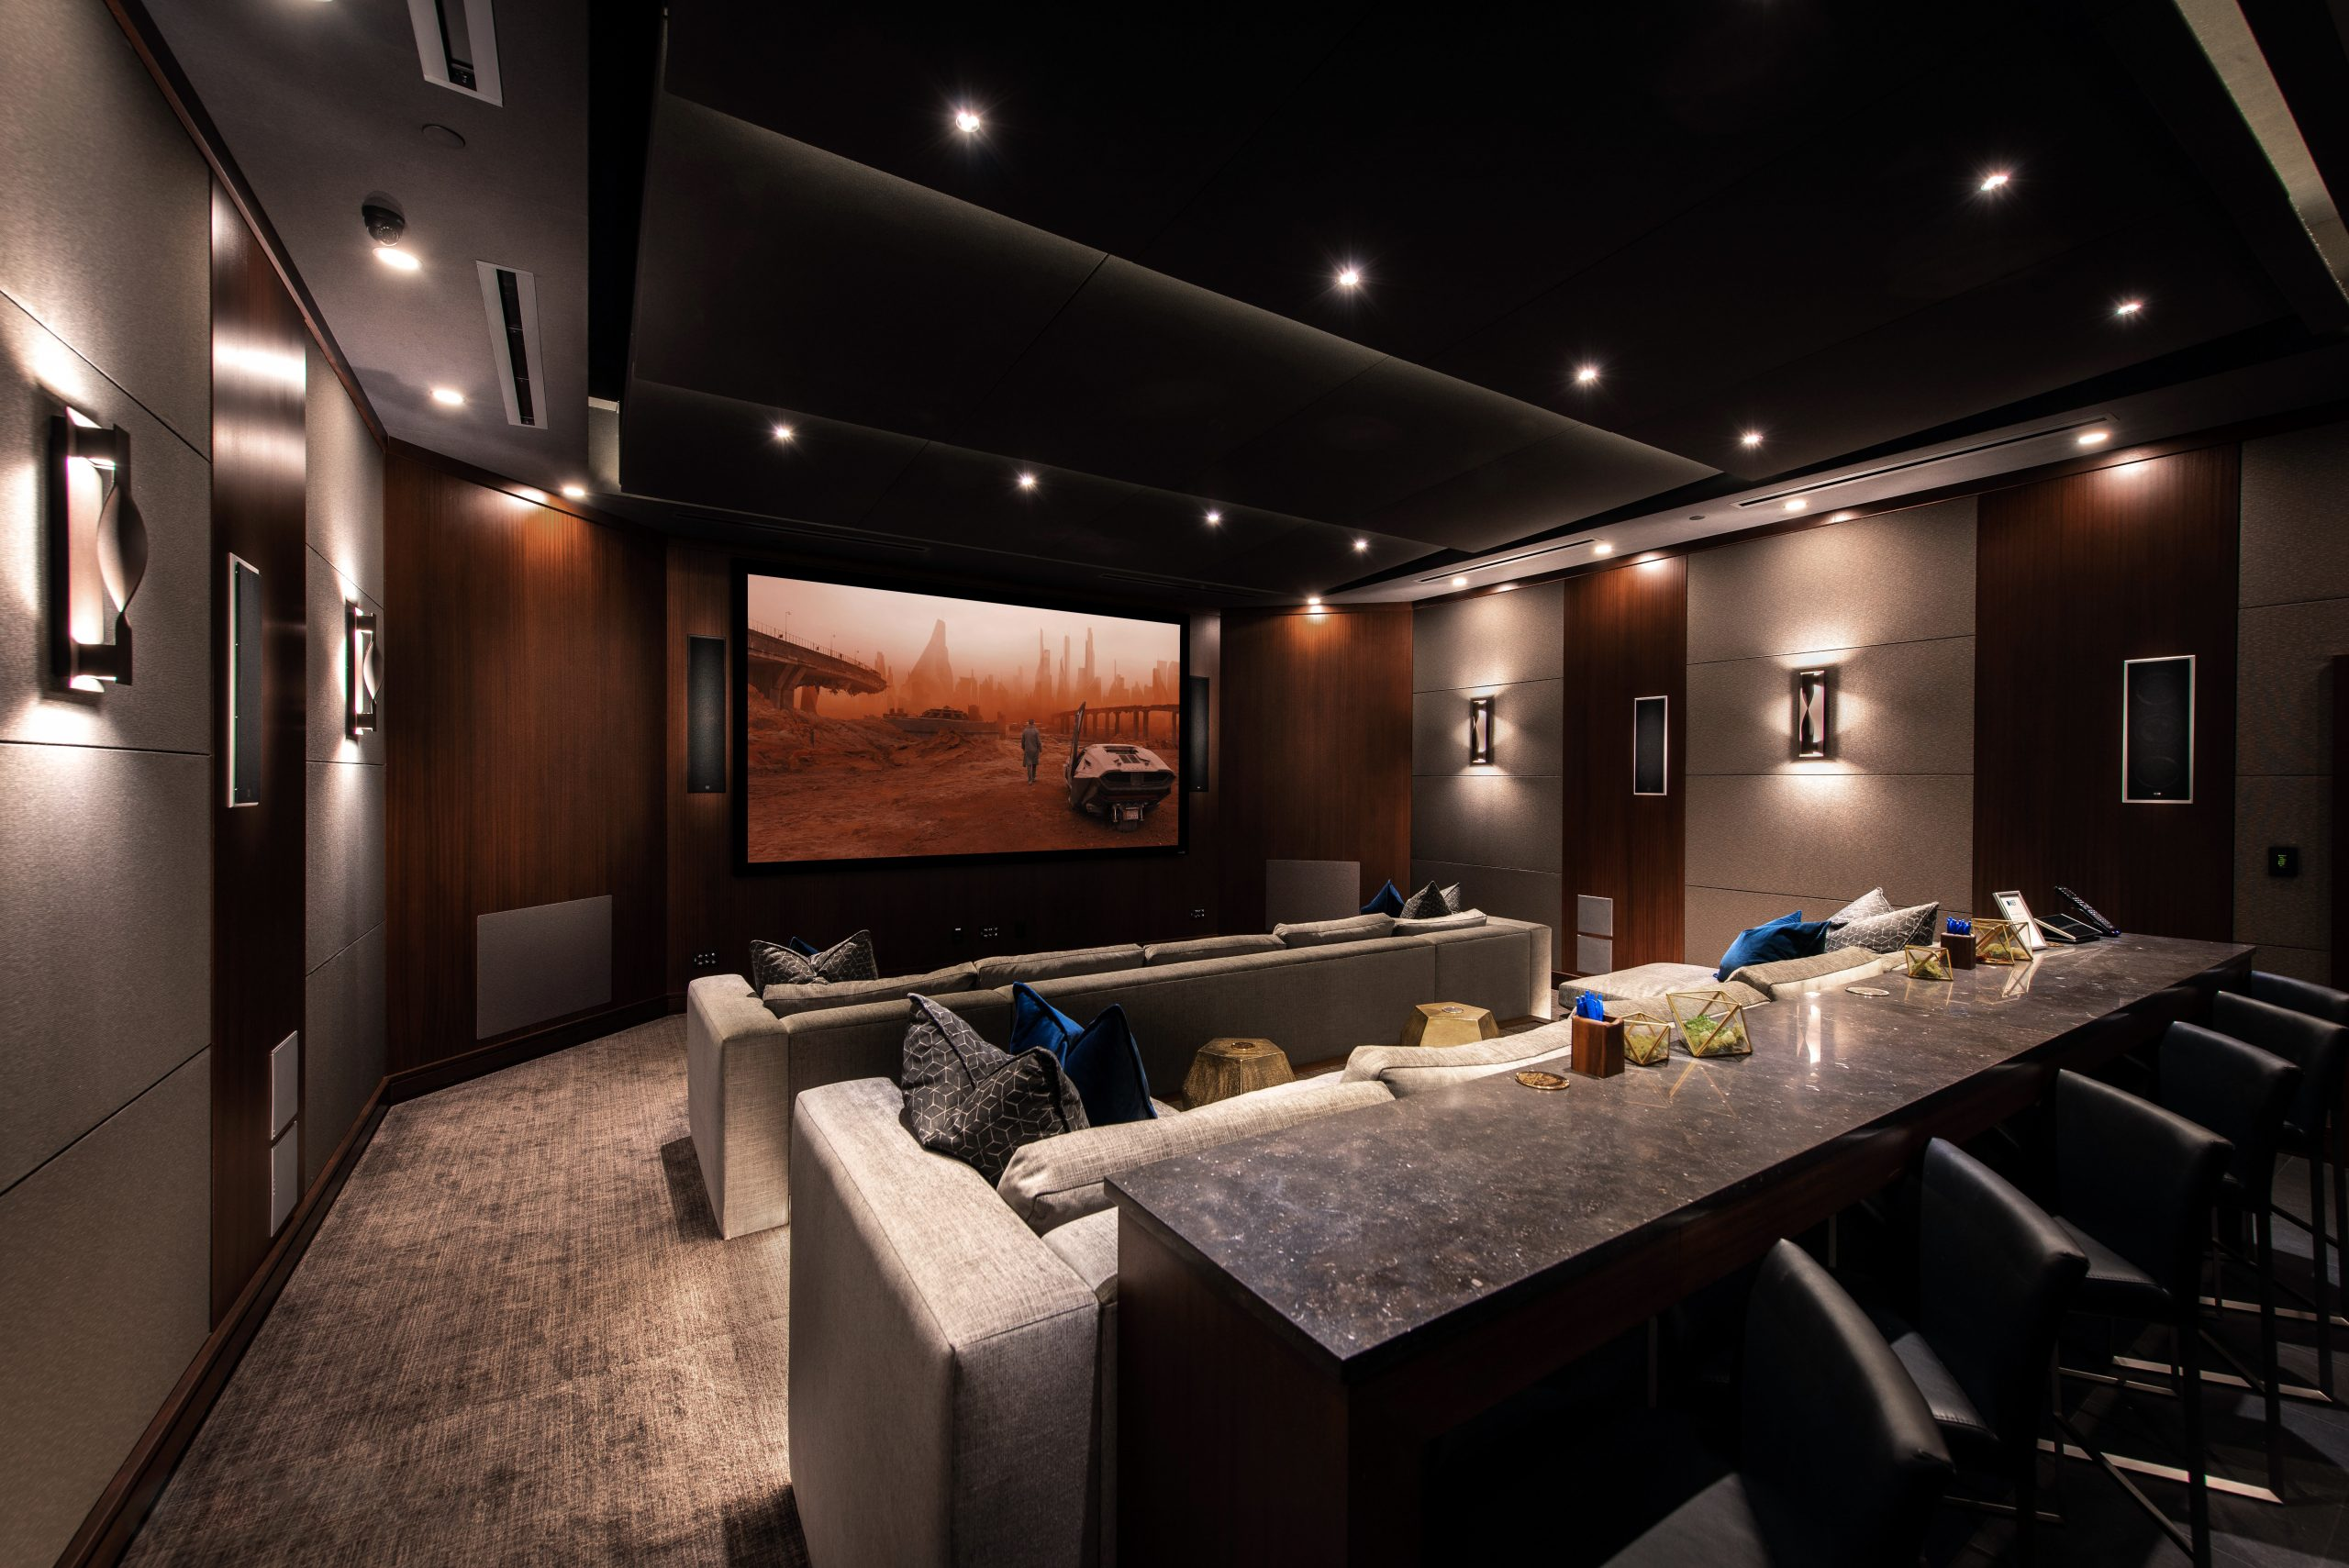 KEF's THX Certified Music Lounge Theater